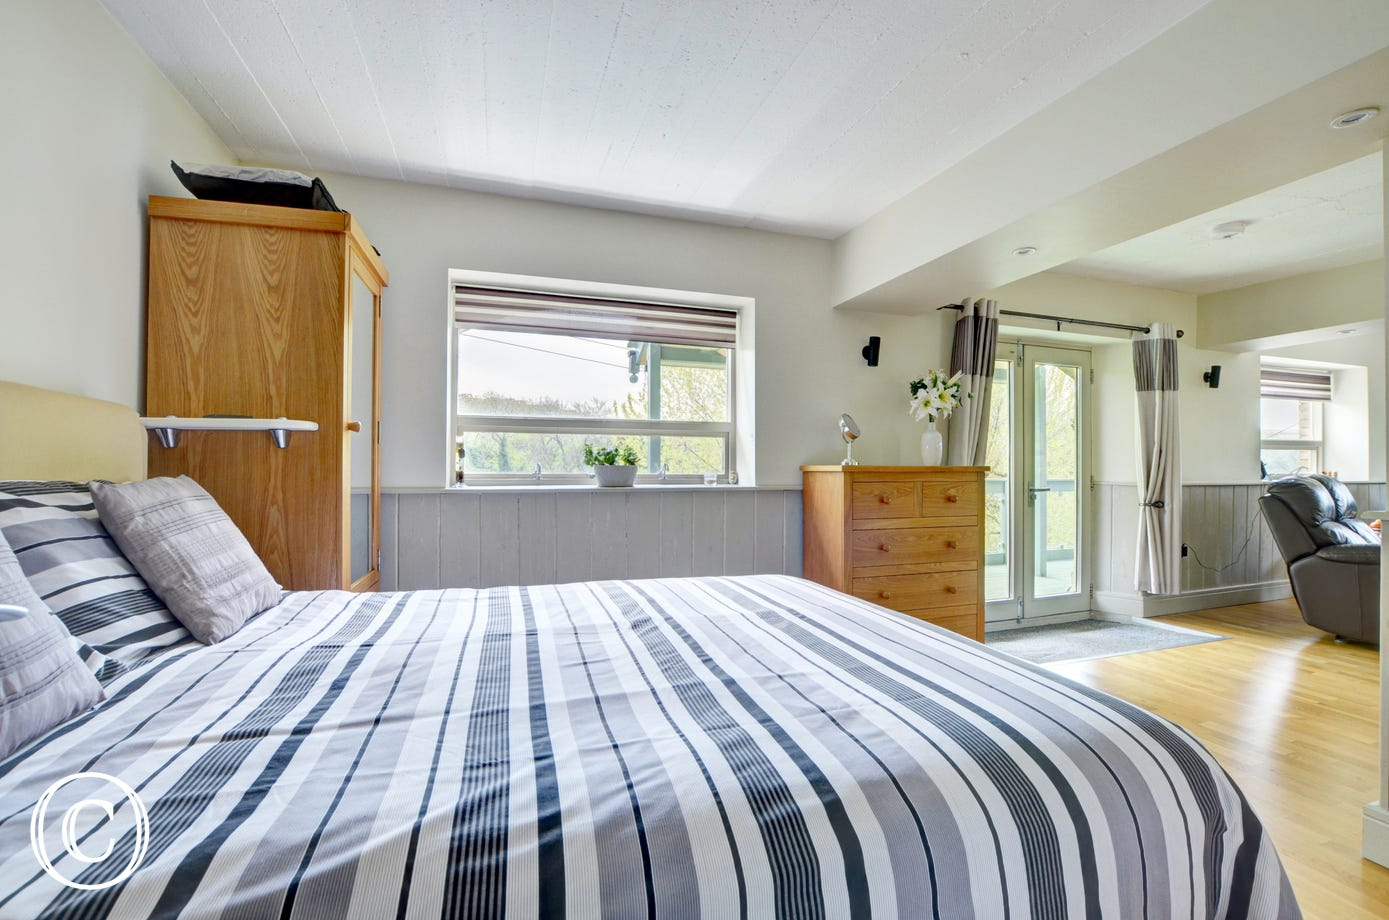 The bedroom area has a king size bed with luxury en suite shower room